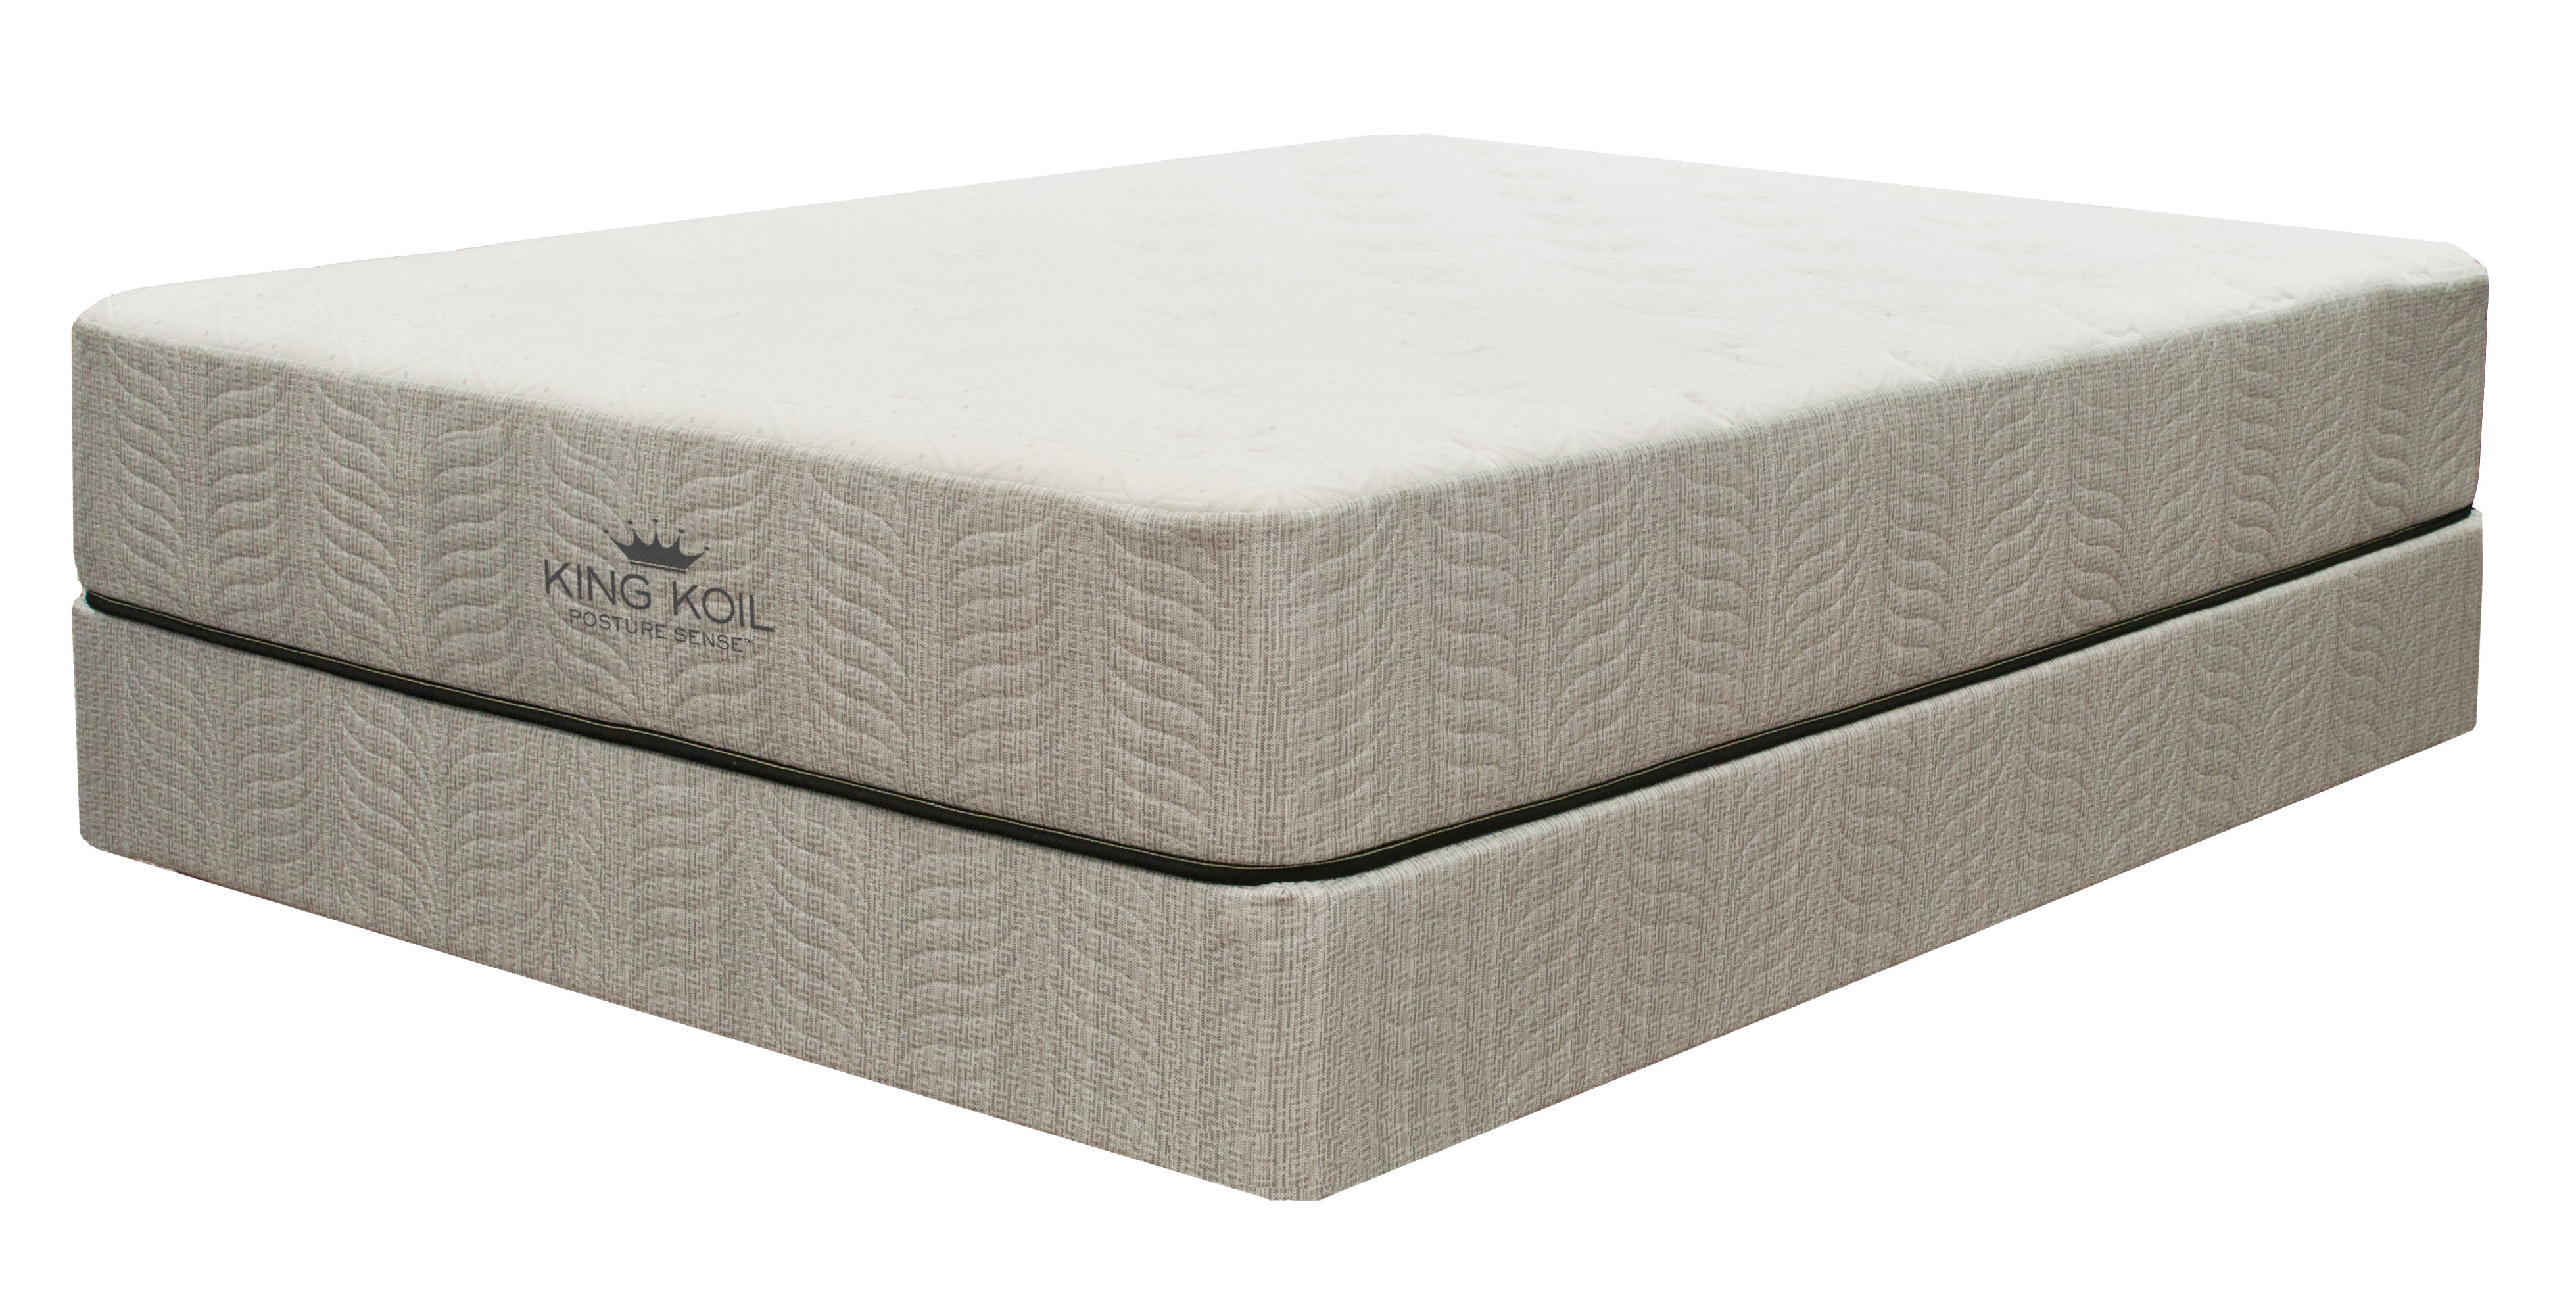 shipping today technology waterproof with remedy safe warm pad mattress restonic bedding free bath reviews electric product warming overstock rest